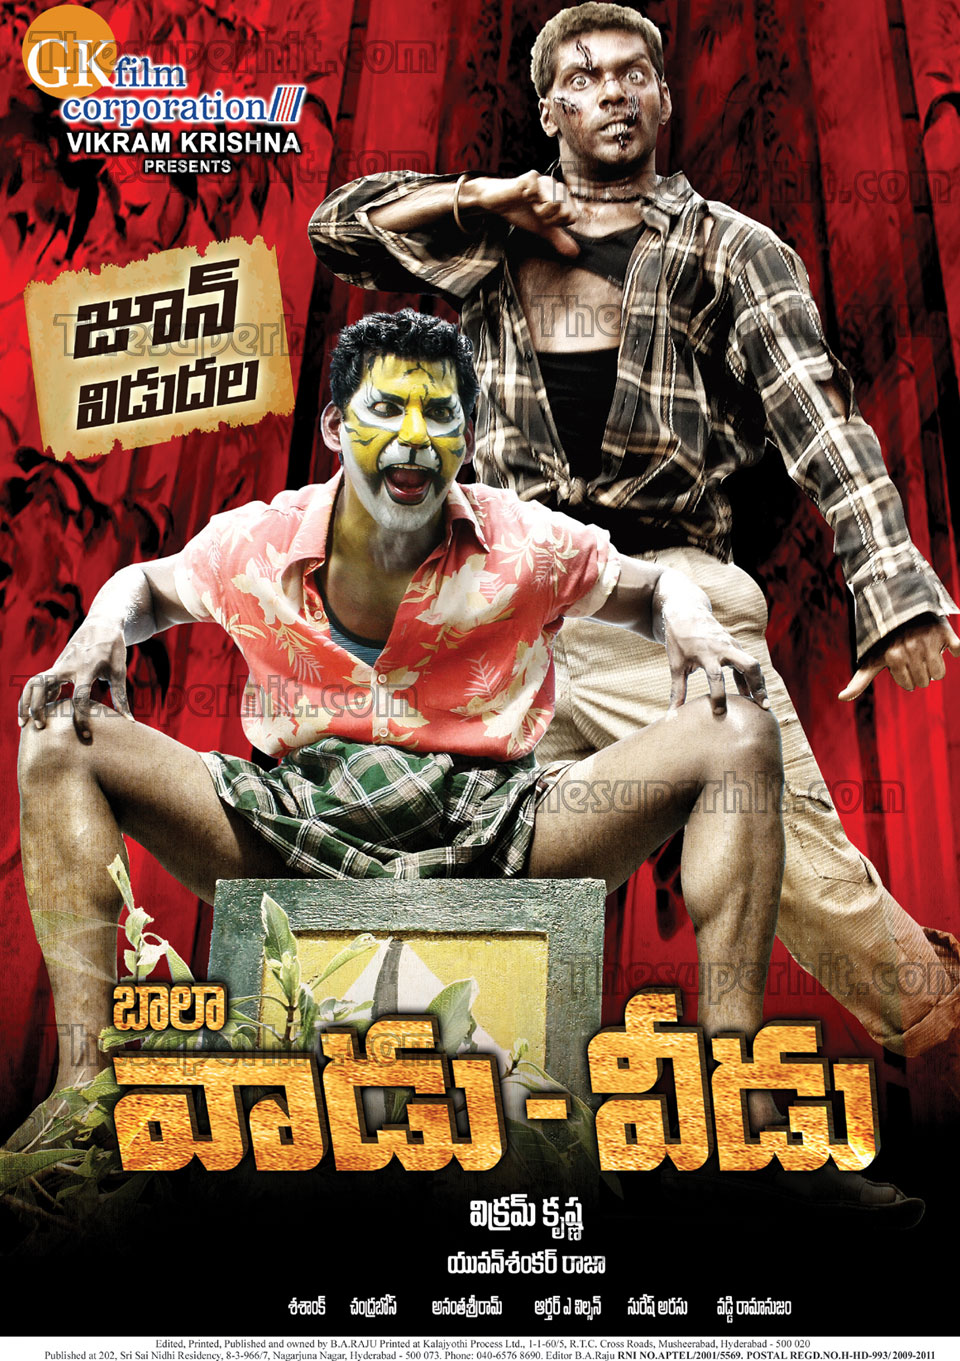 Nippulanti manishi movie songs free download.